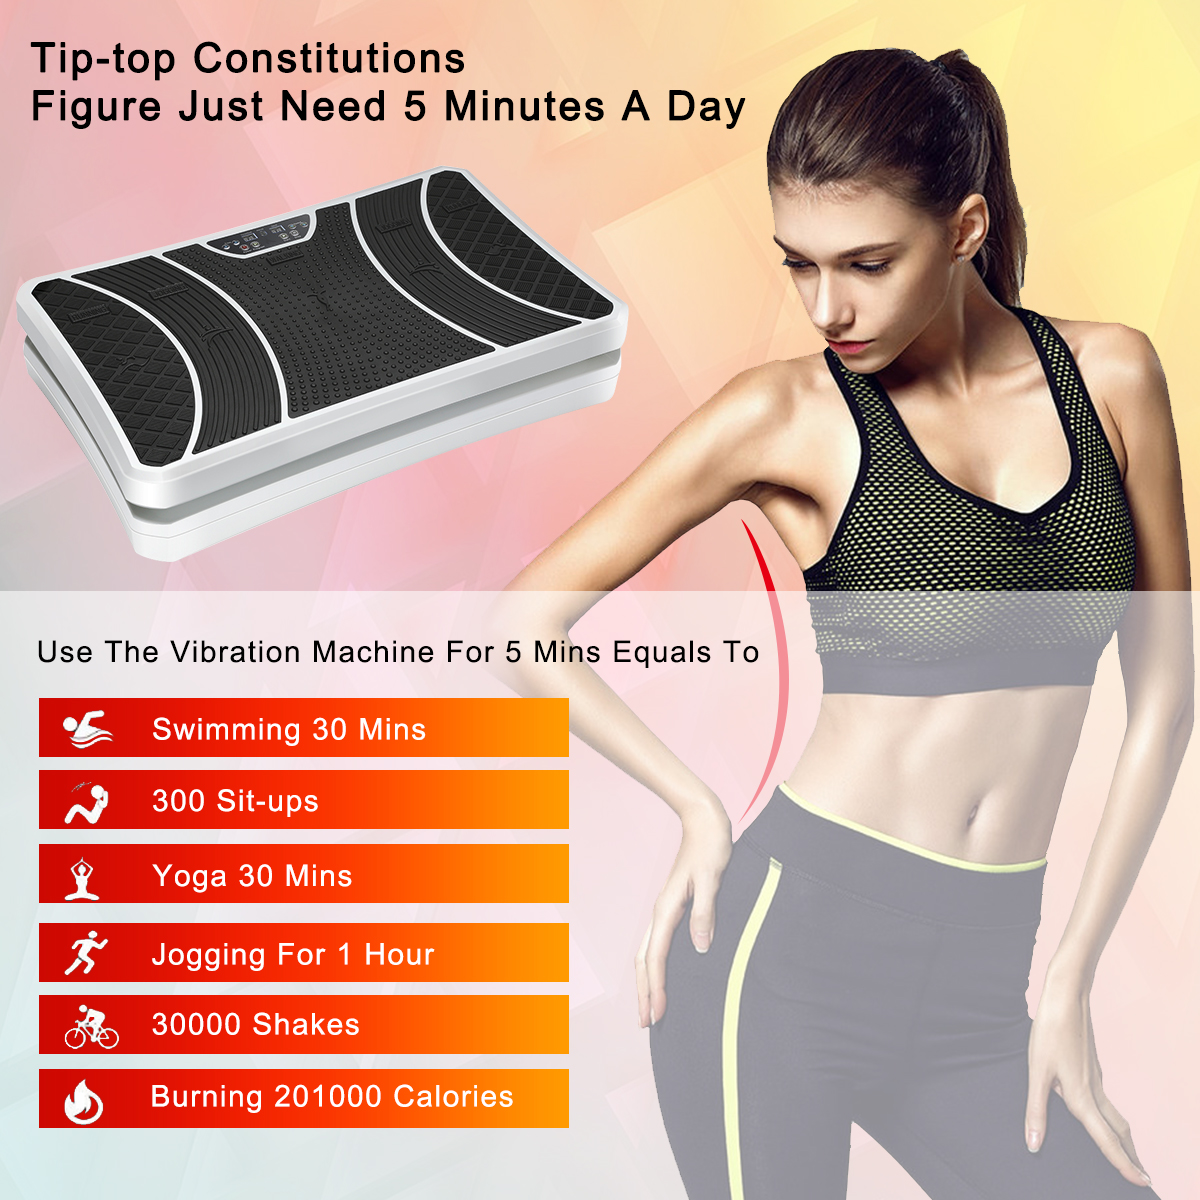 60607c7f7b220 Confident Body Fitness Vibration Plate Remote Control Vibration Platform Home  Workout Massage Vibration Machine Slim Body Shaper Exercise Equipment with  ...